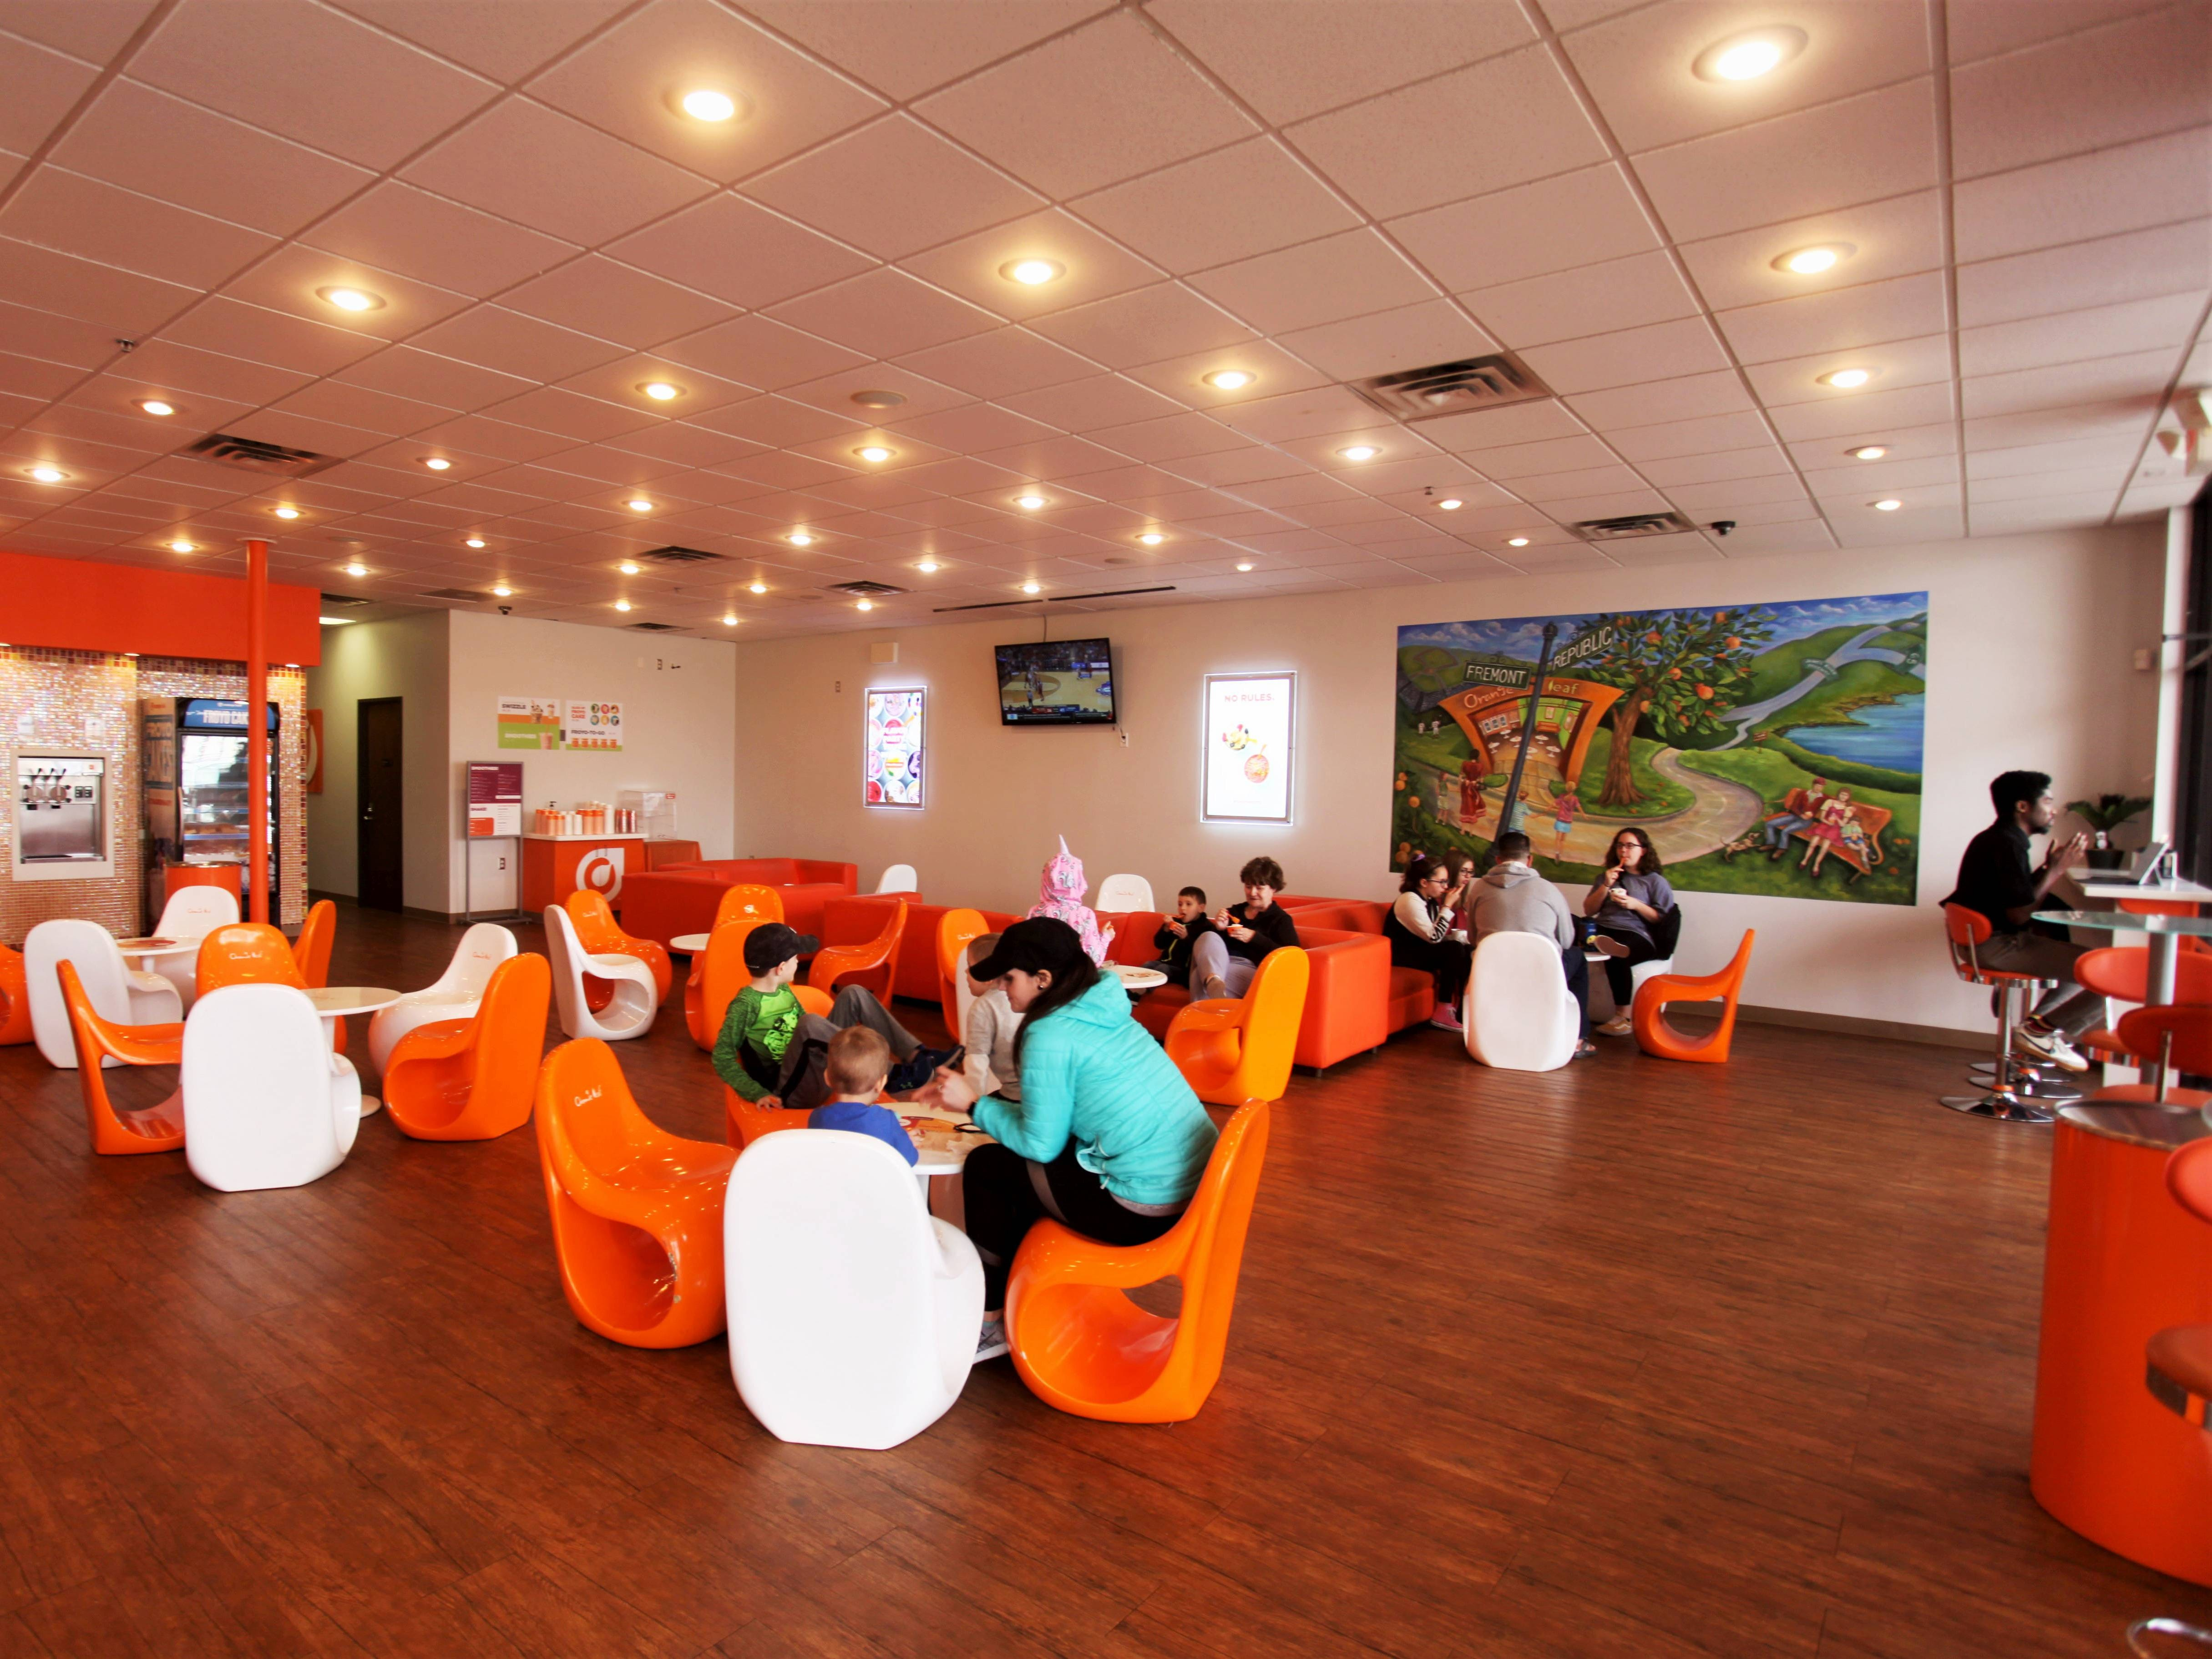 Orange Leaf closed in December 2018 after then-owner Curt Bartell cited bad investments and health issues. Amber and Jim Troye reopened the store on March 14, 2019.